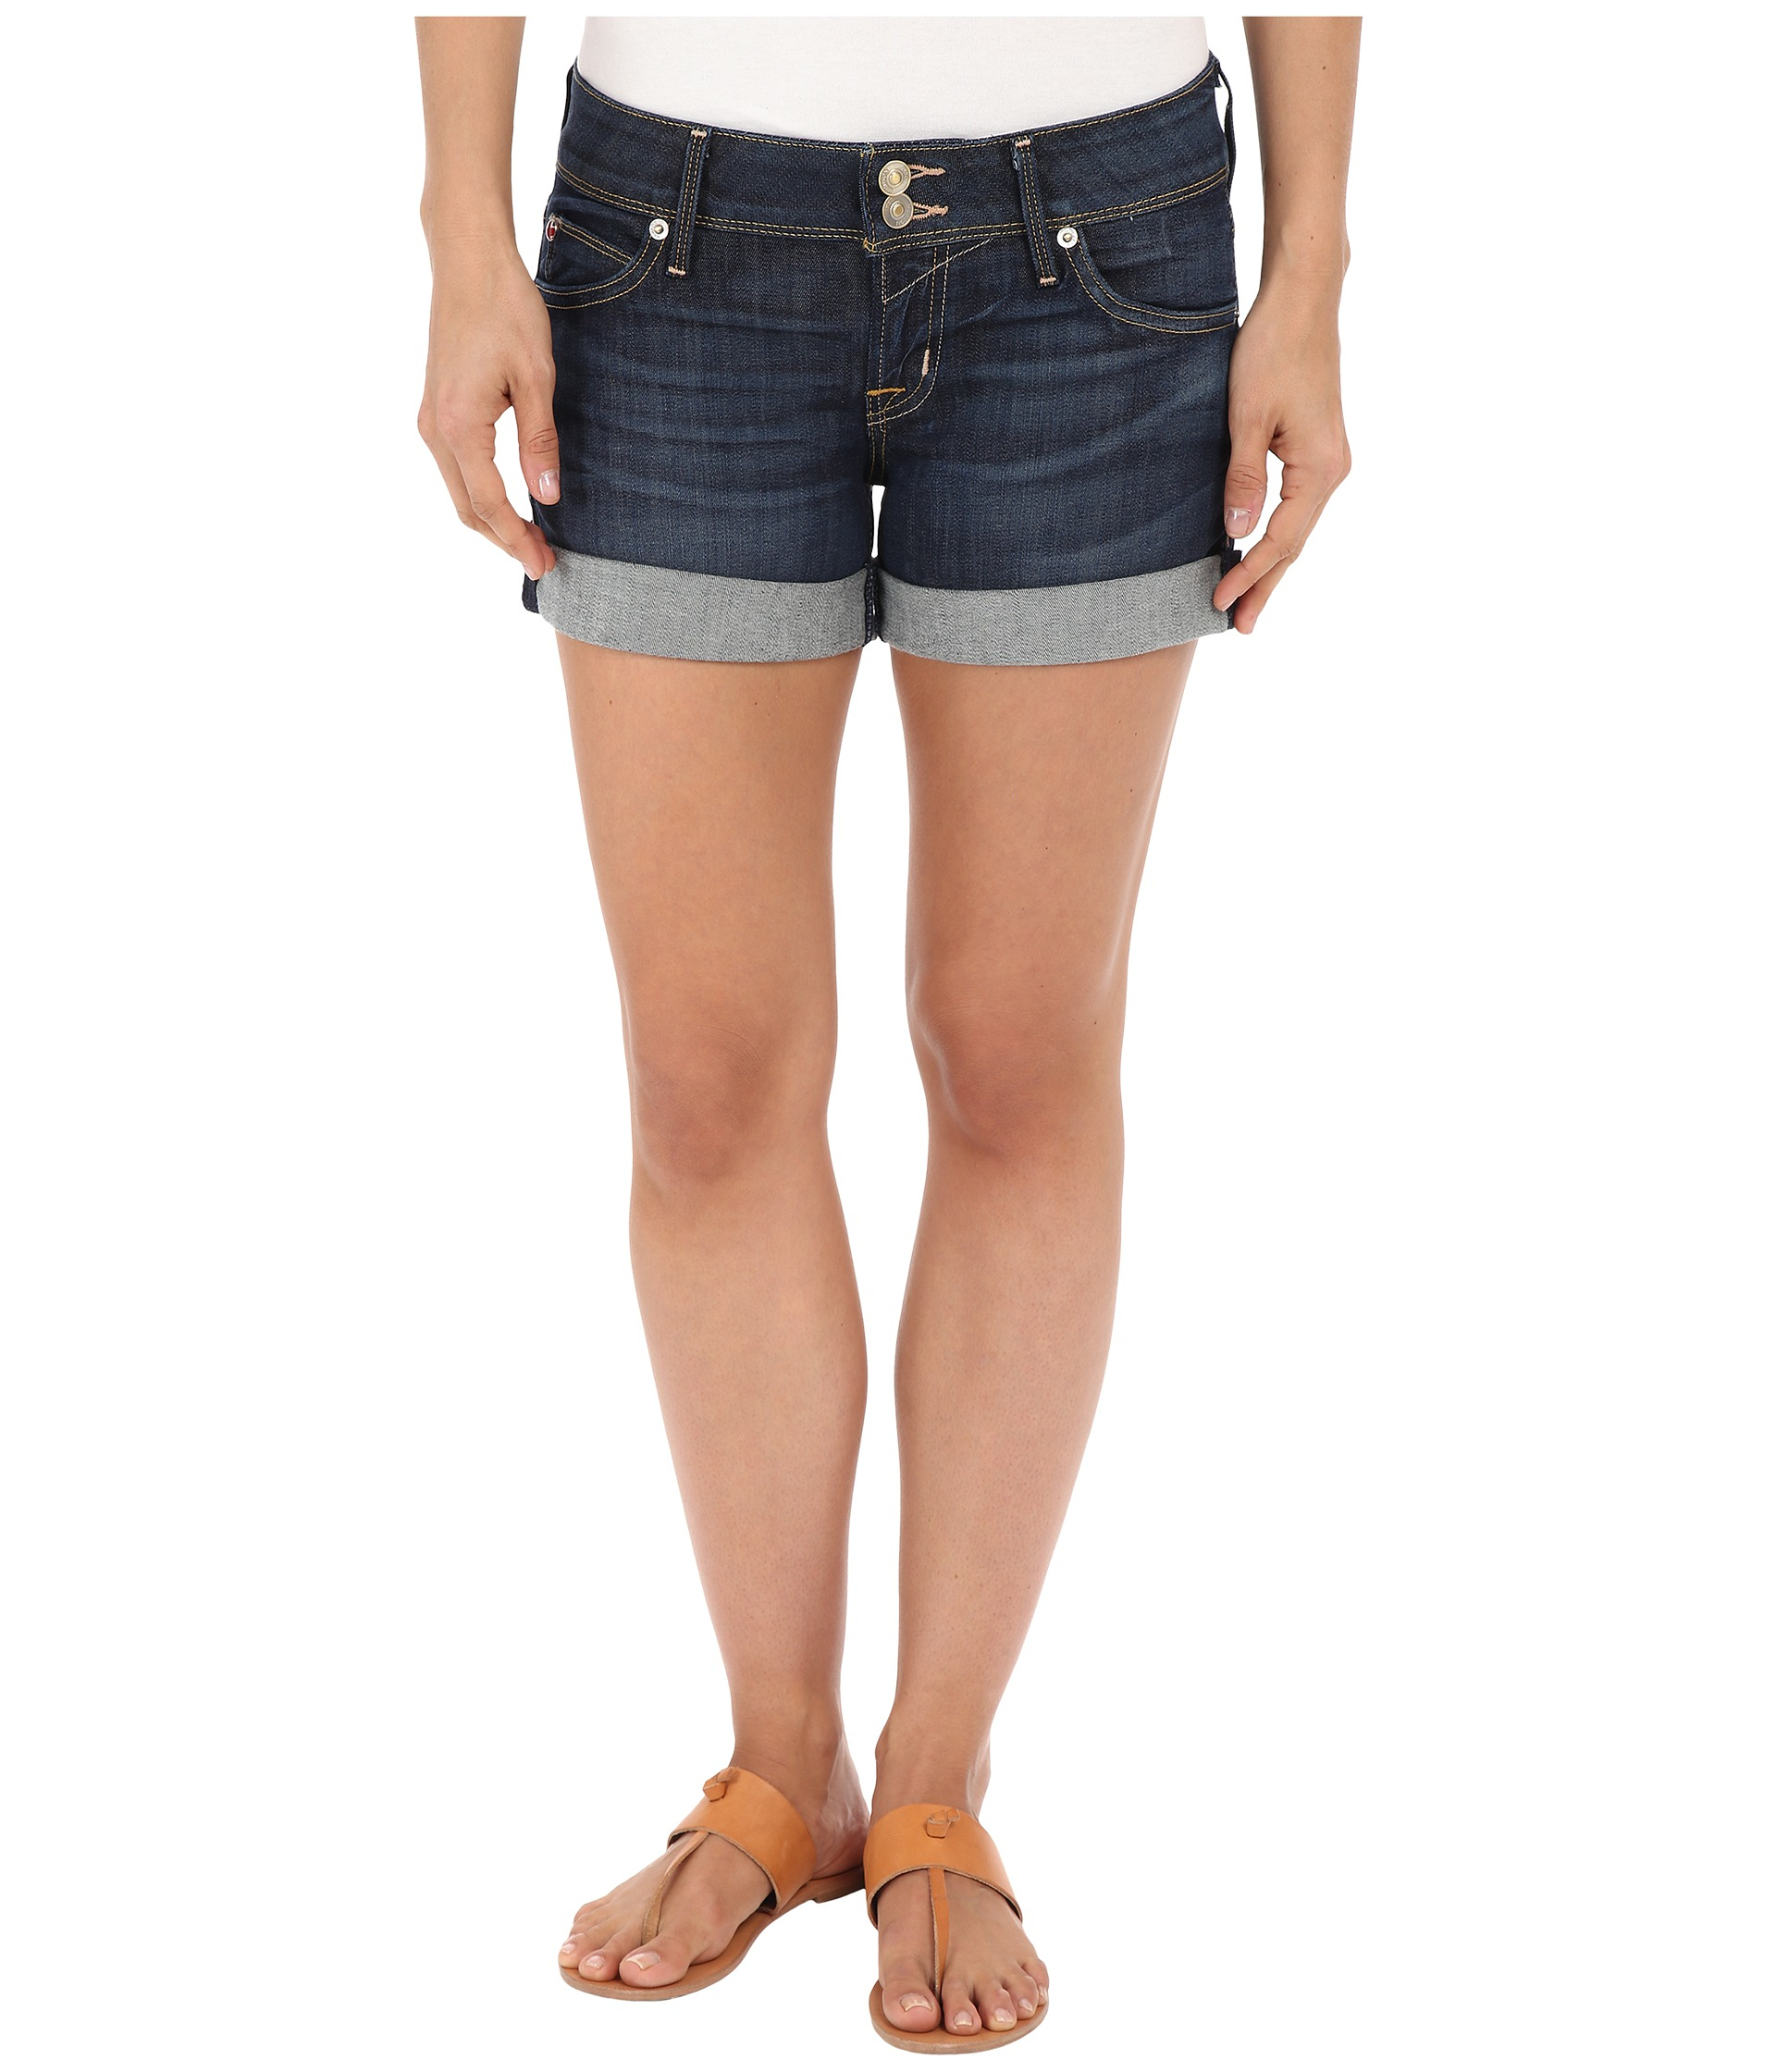 dcea54a54c Lyst - Hudson Jeans Croxley Shorts In Stella in Blue